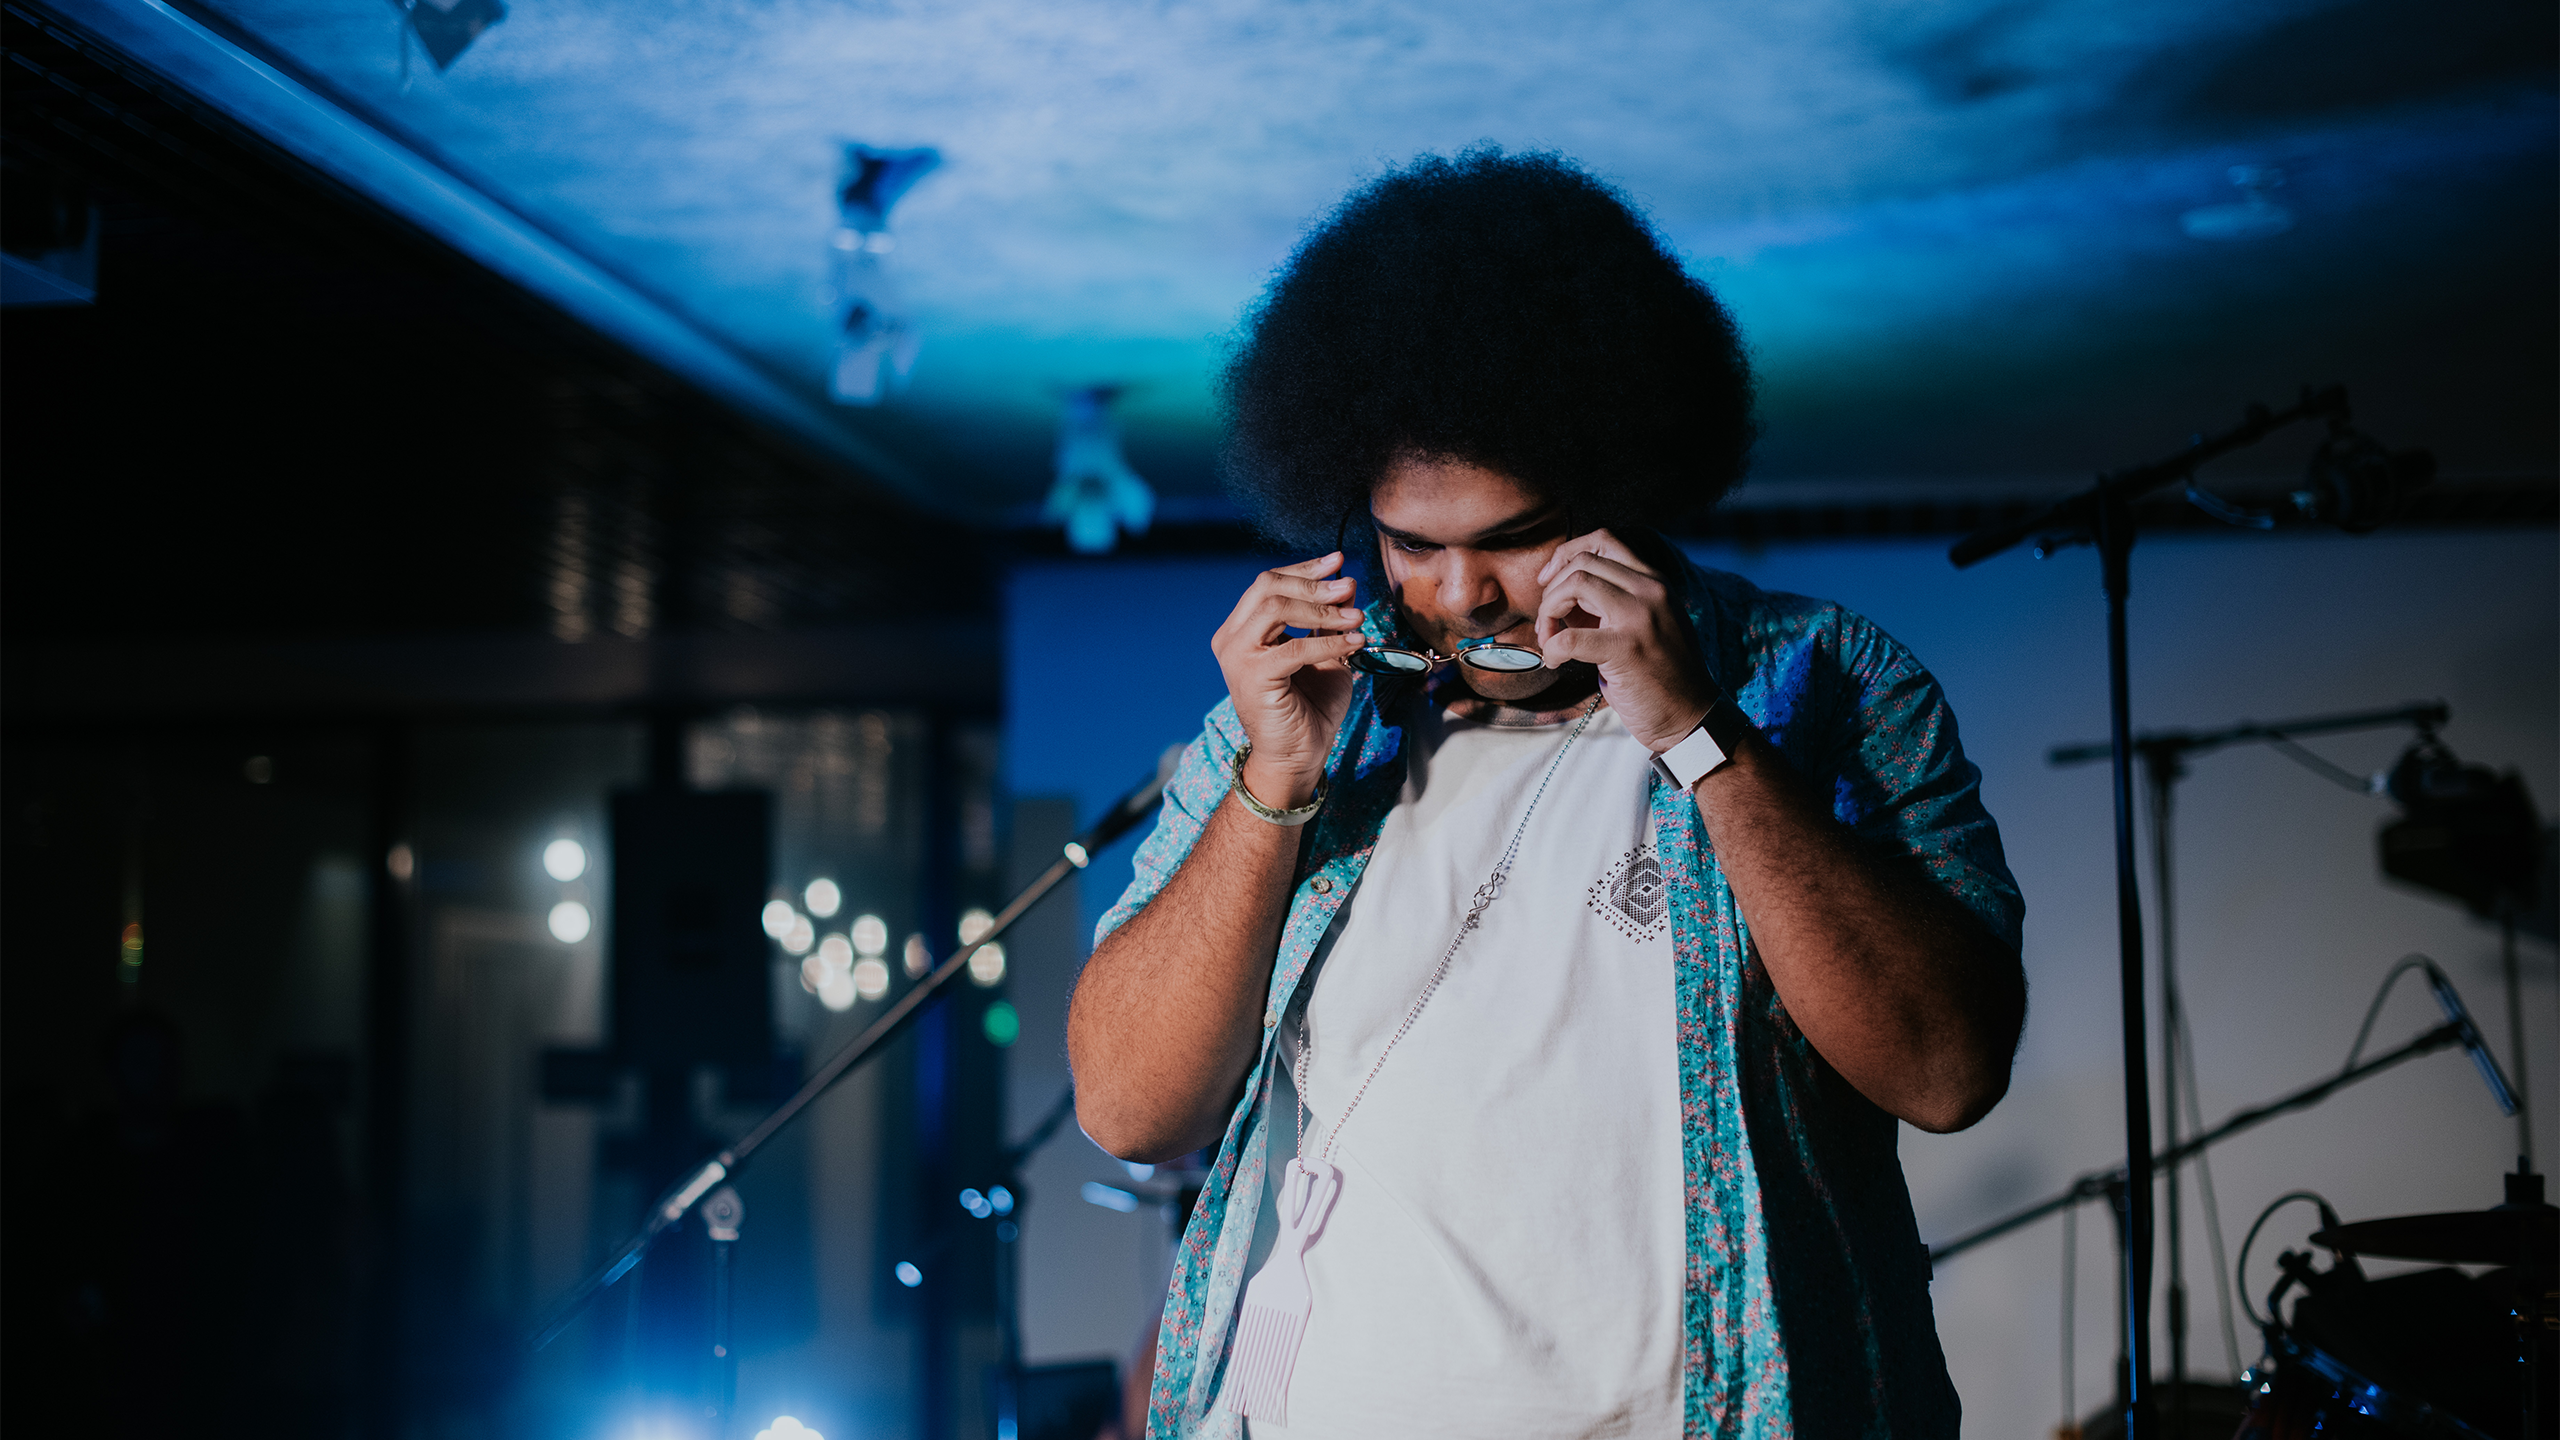 Dylan Cartlidge performs at PRS presents November 2018